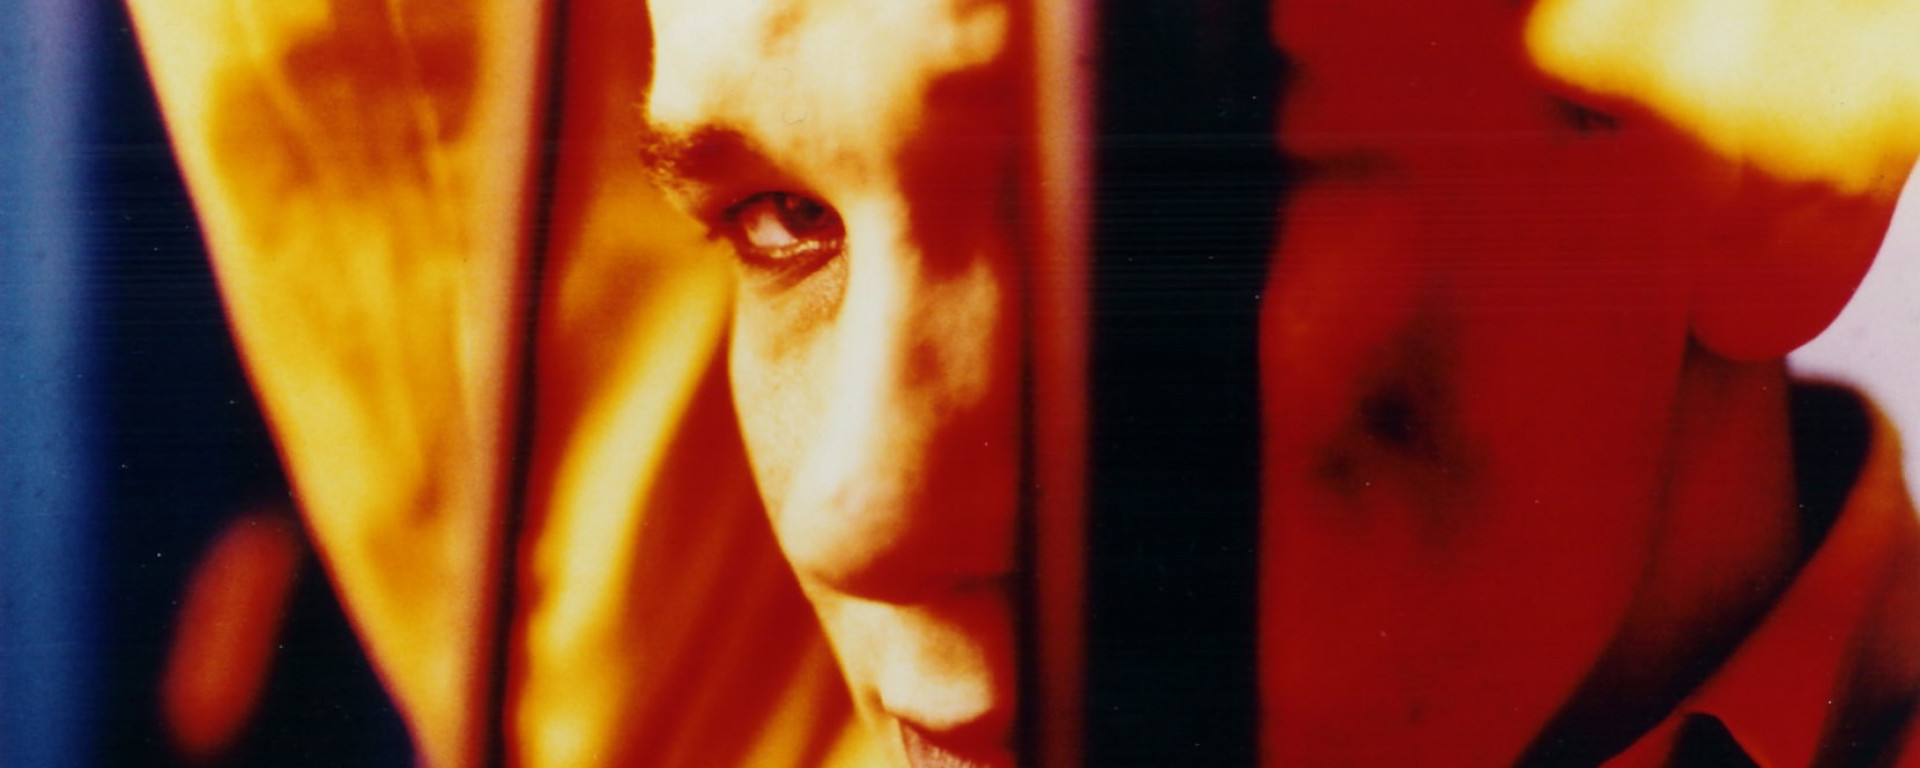 Close-up of a man's face in saturated, acidic orange tones. His looking to camera, his face obscured by what appears to be a vertical bar of some kind. His expression is that of someone lost